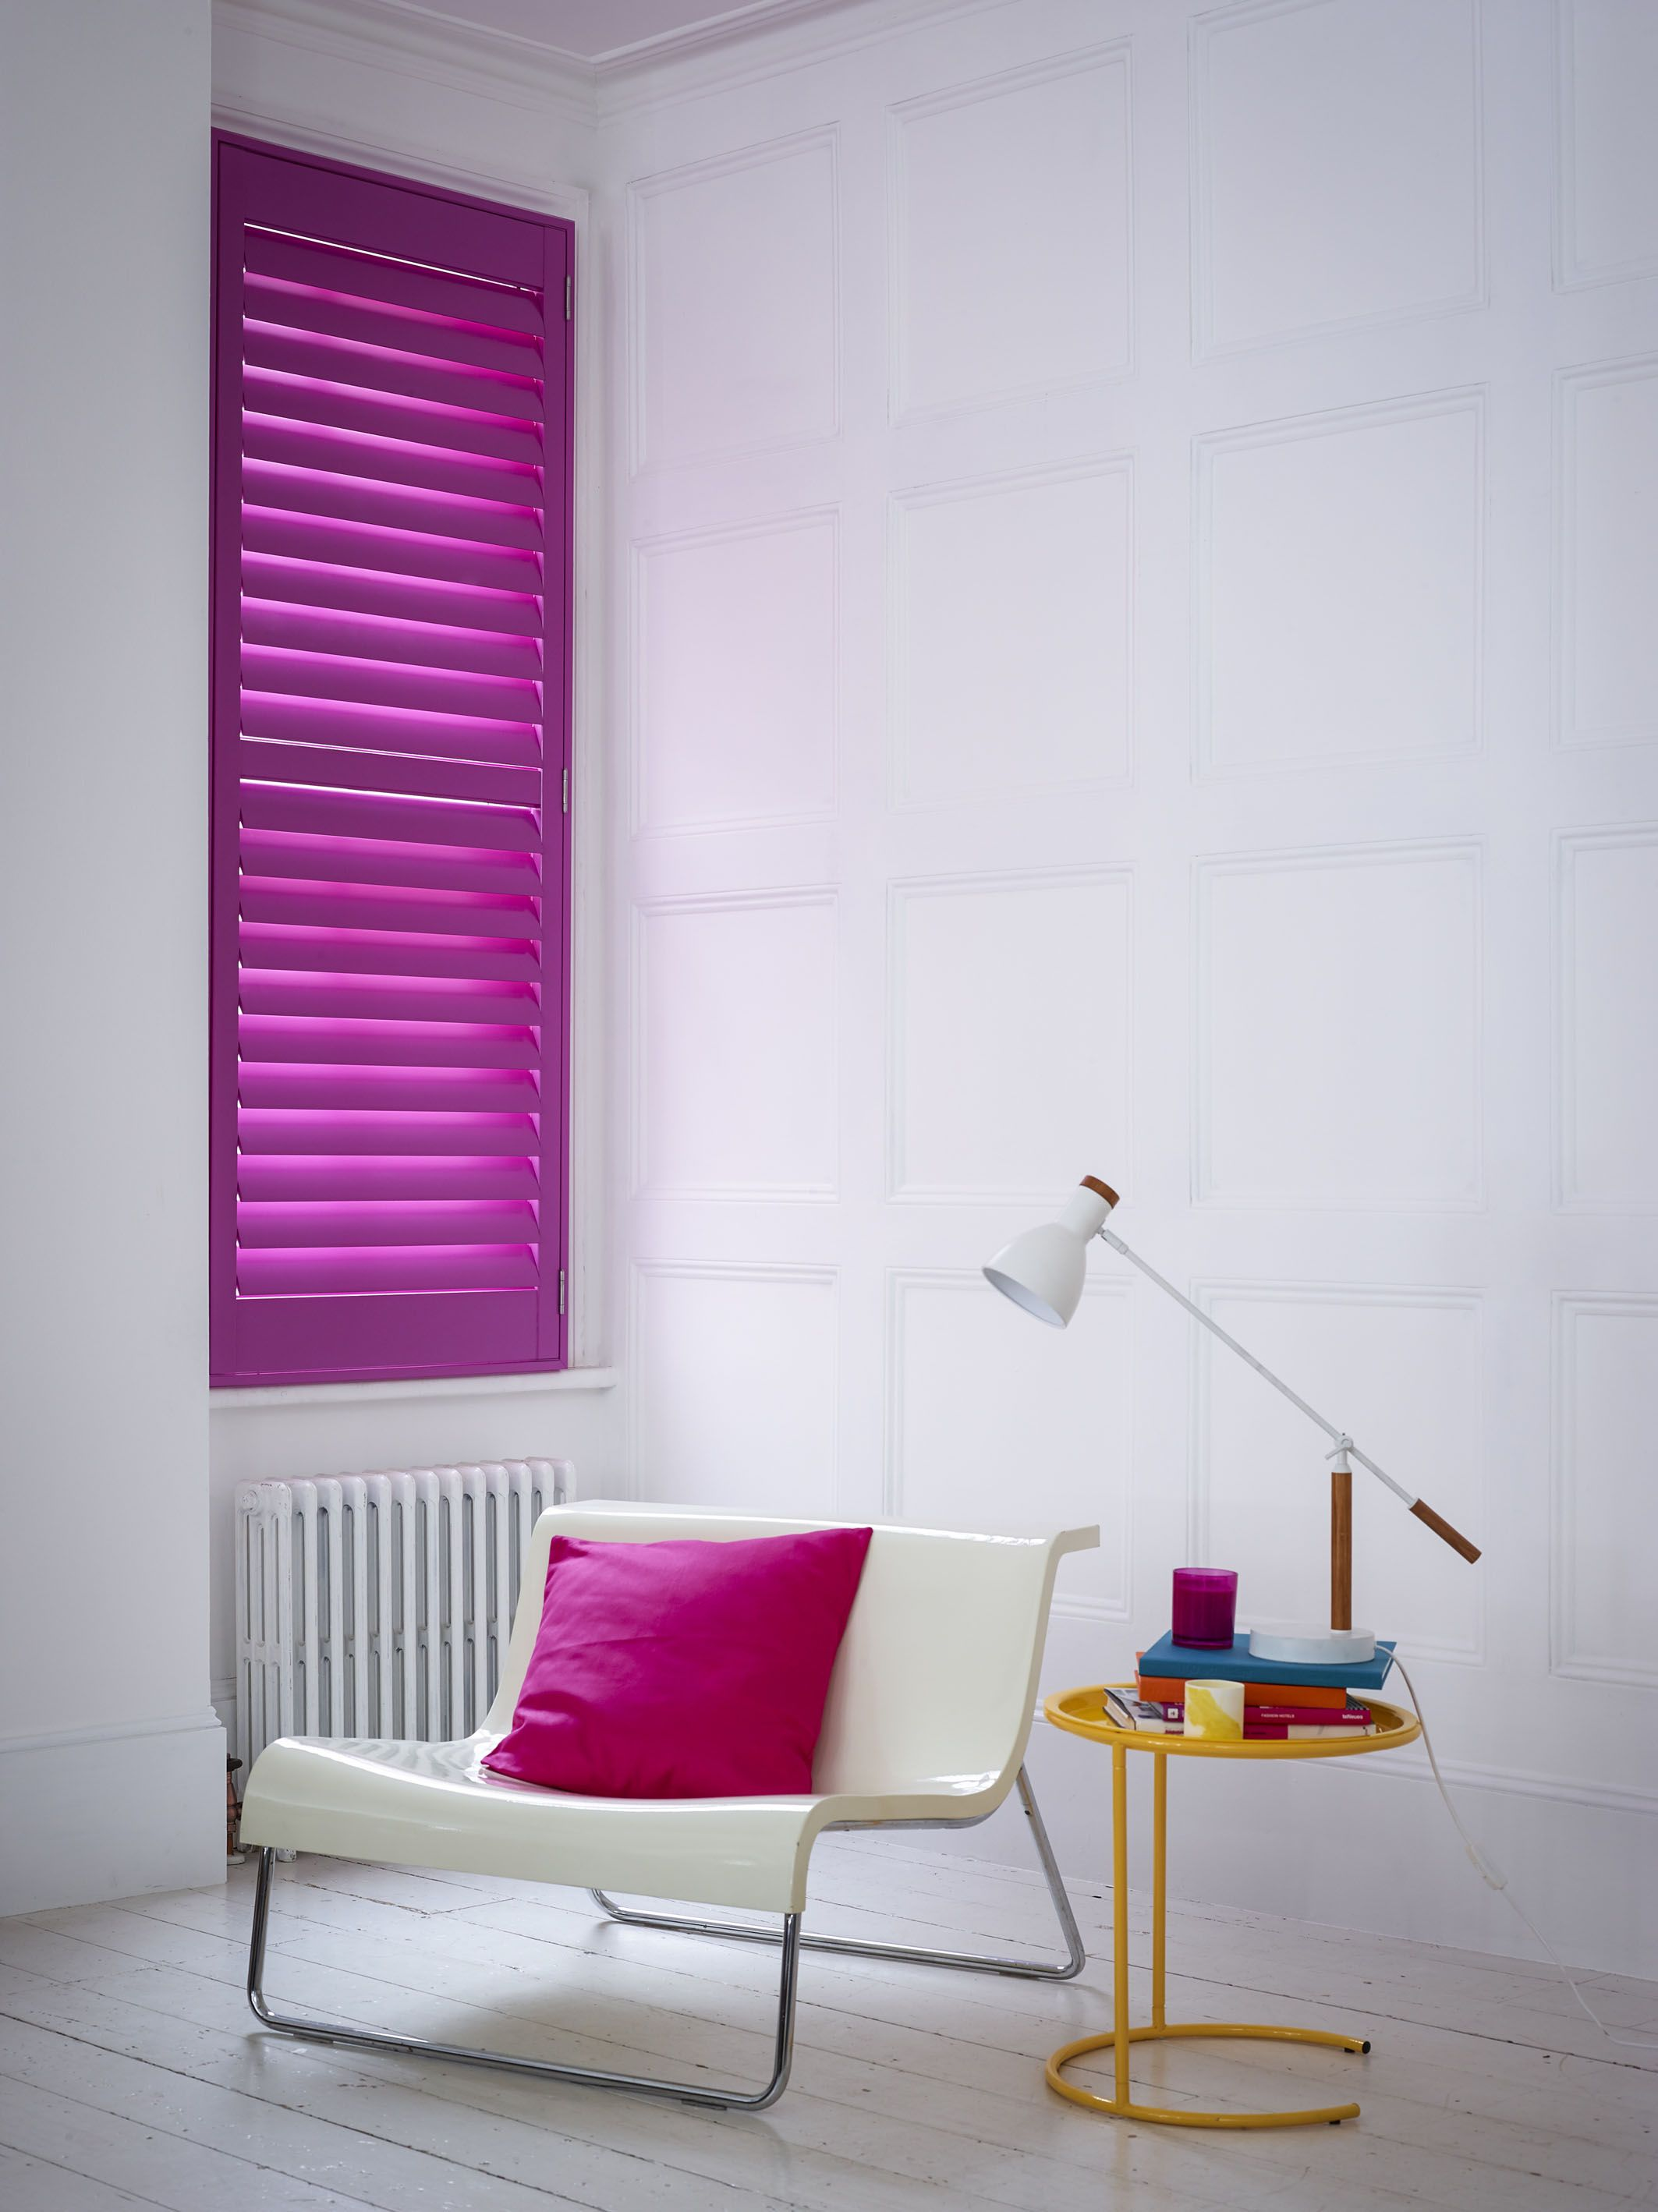 Great Pin By Plantation Shutters Ltd On Bedroom Shutters | Pinterest | Bedrooms,  Window And Living Rooms